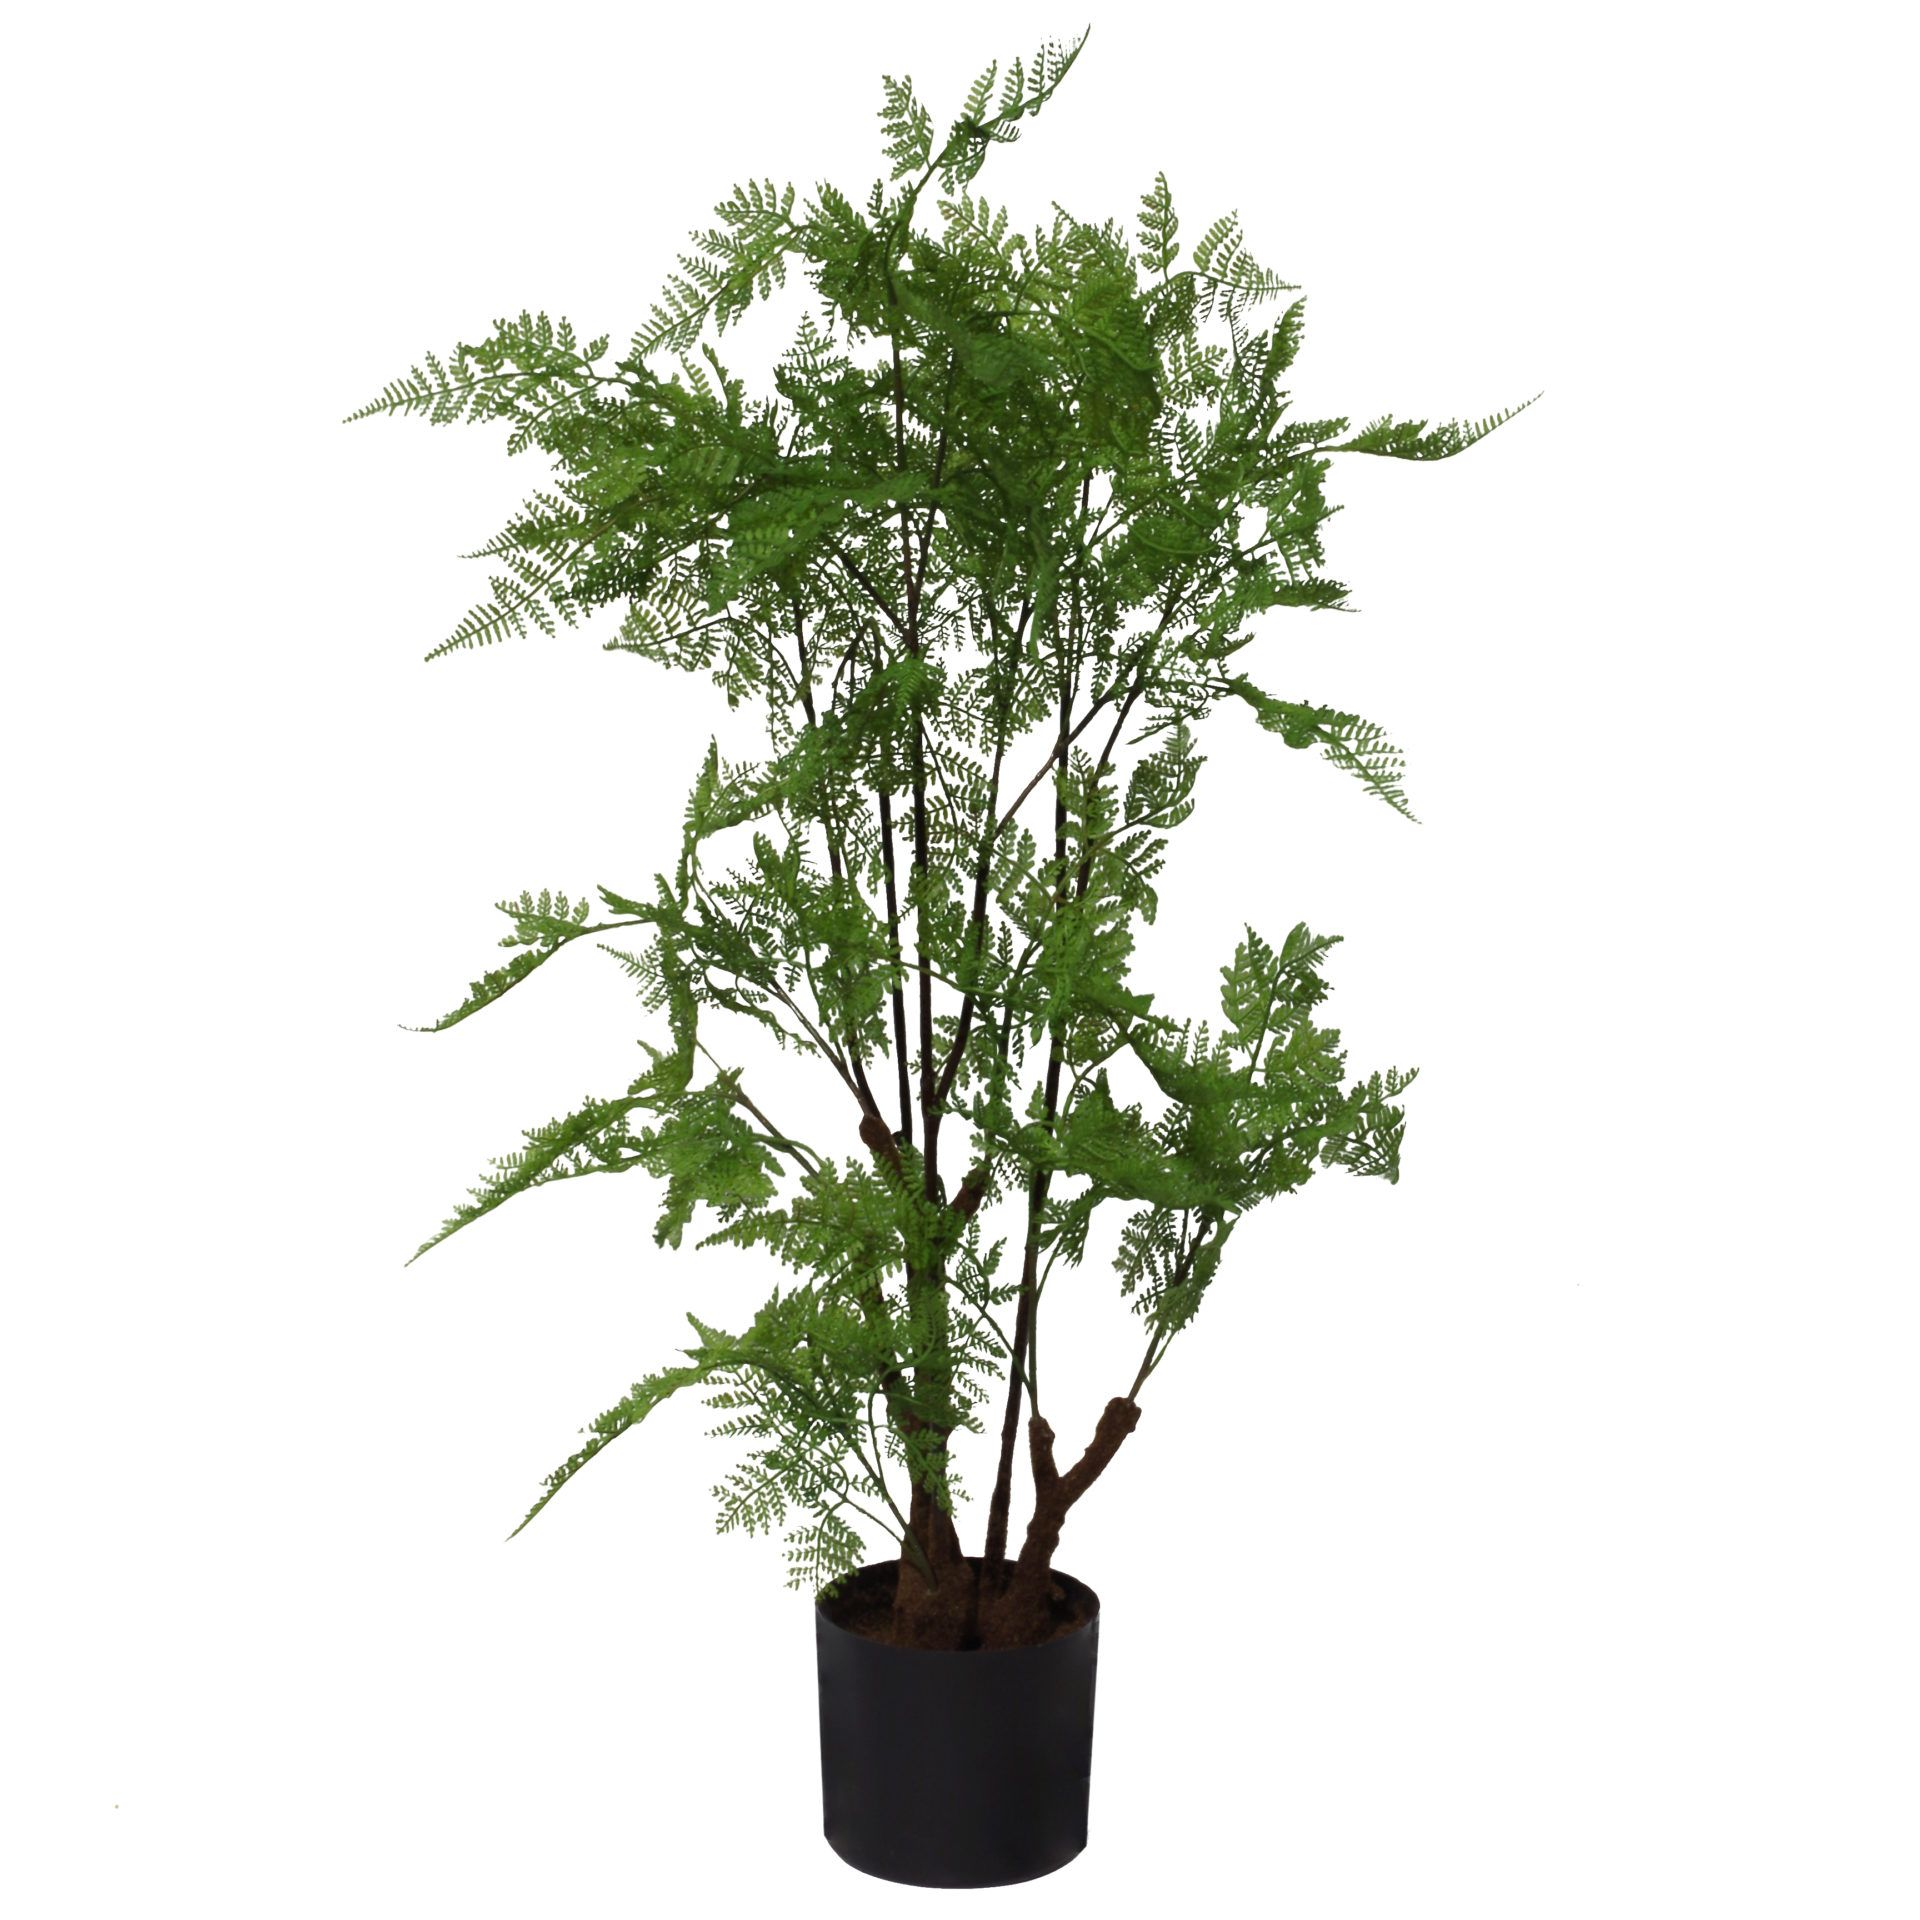 Price: £39.99 90cm Artificial Natural Moss Base Fern Foliage Plant Leaf Artificial Plants This artificial moss base natural fern plant measures 90cm tall x 50cm x 50cm when arranged as we have it in our pictures. Comes fully potted in a plastic pot, ready to display (planter measures 15cm wide x 13cm tall). Fully wired stems ready to be arranged to fit your space perfectly. Pot material: Plastic. Leaves: Plastic. #ArtificialPlants